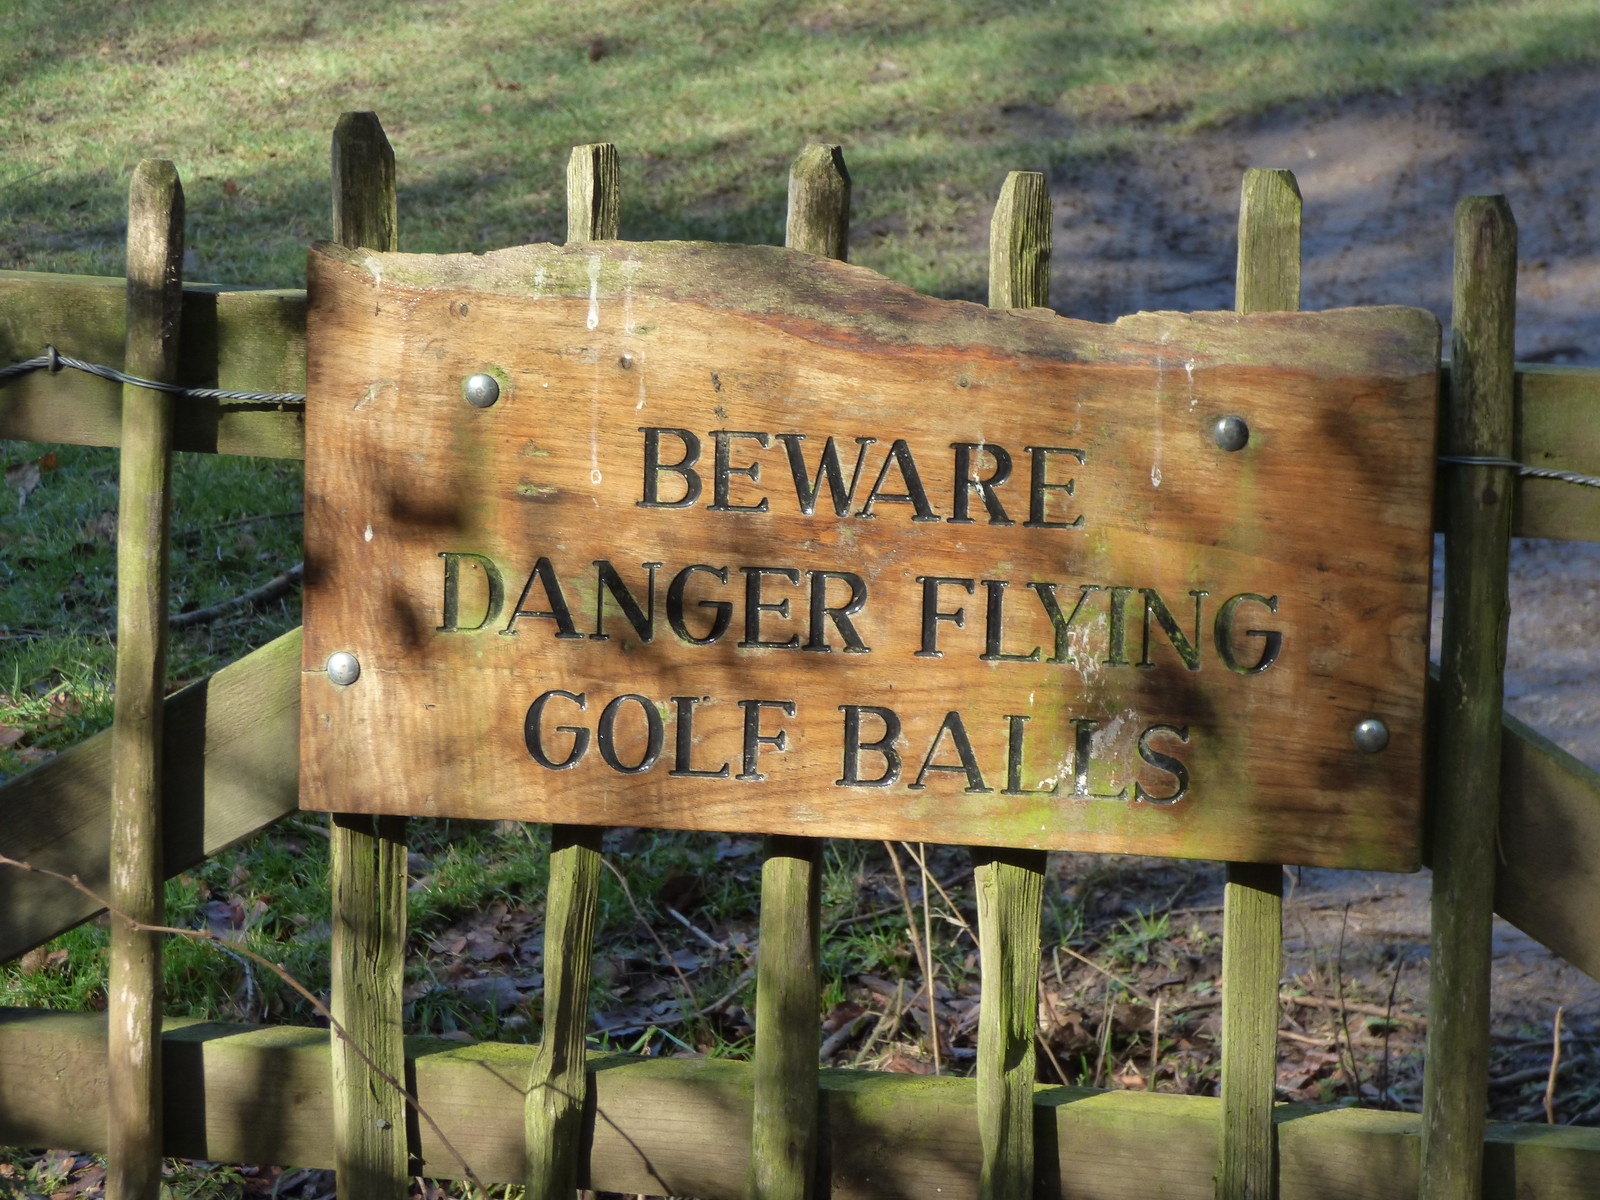 Halesowen Golf Club - Leasowes Park - sign - Beware Danger Flying Golf Balls | by ell brown